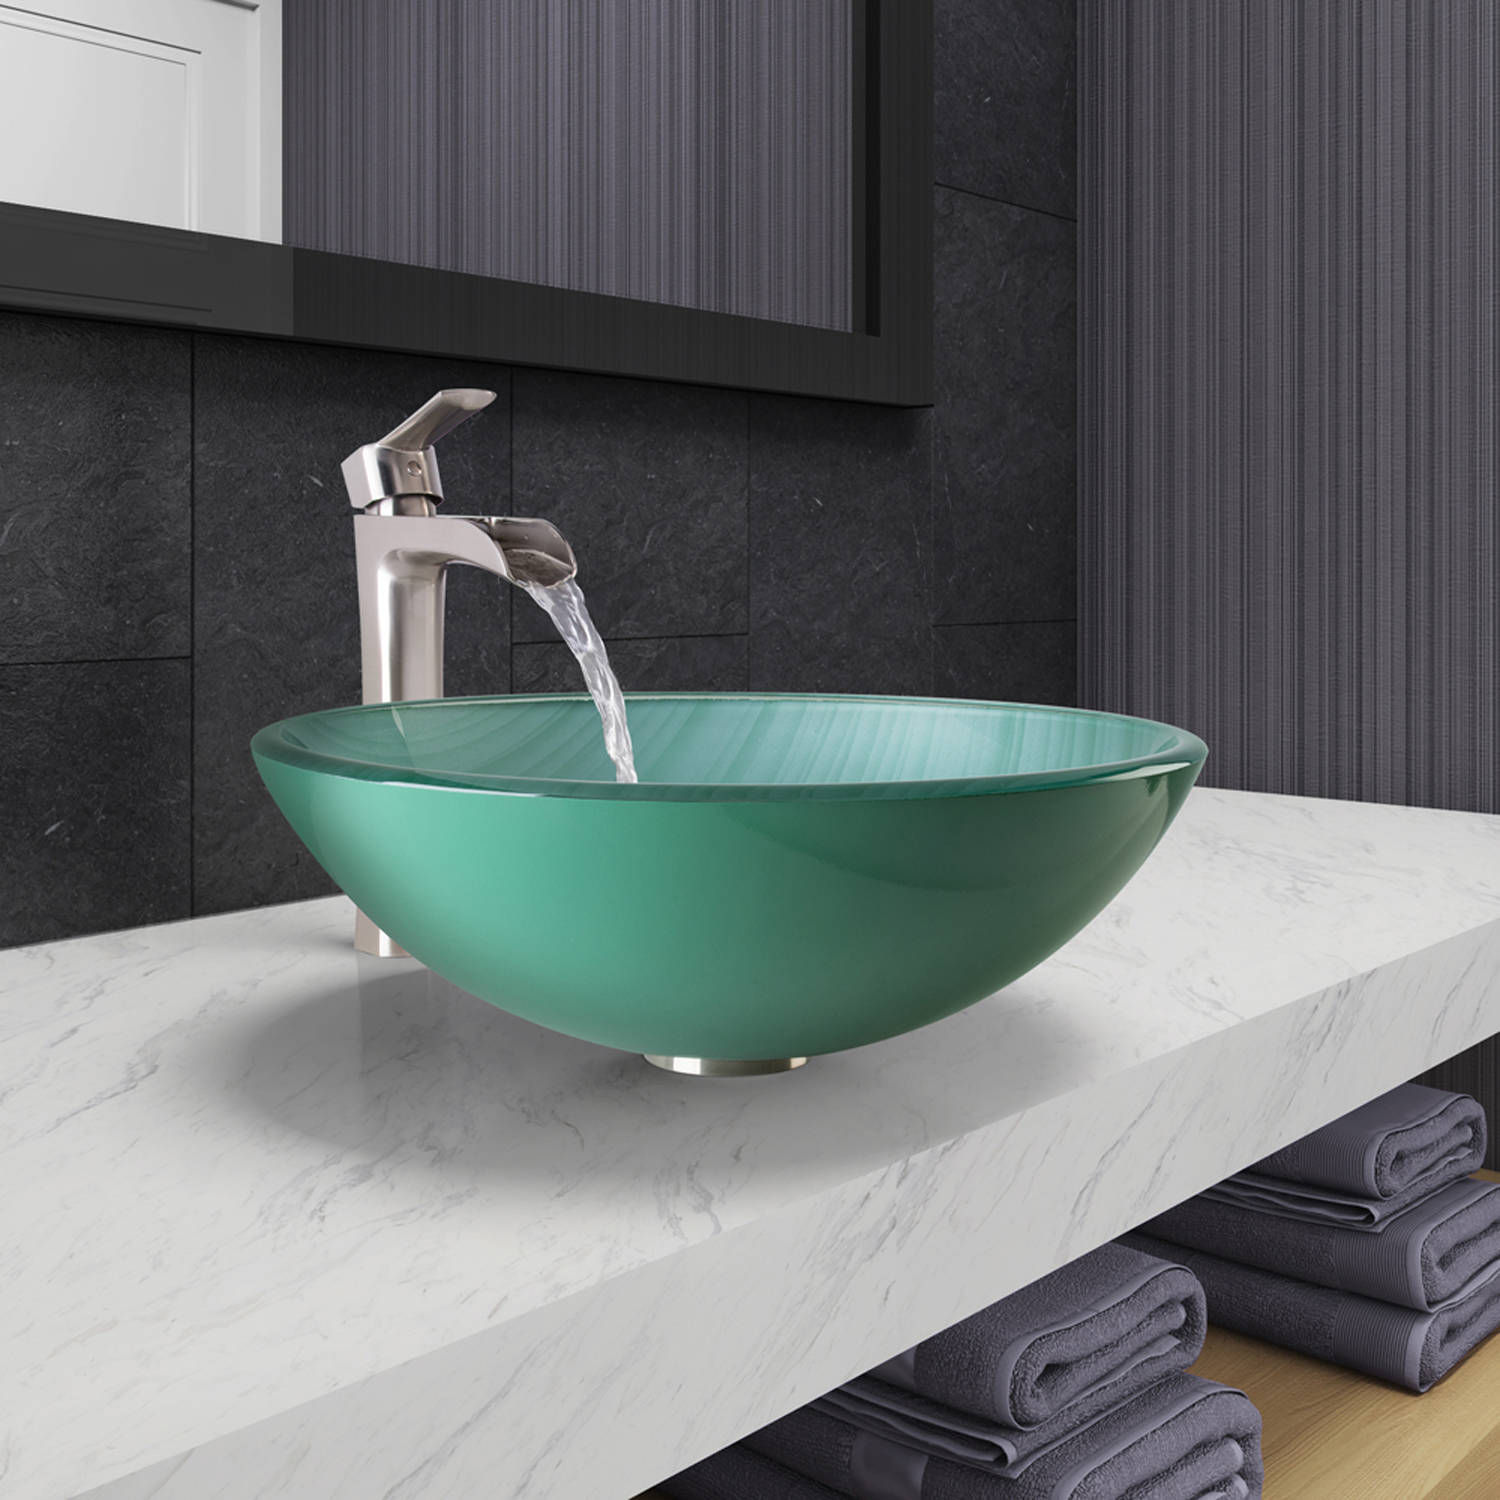 Vigo Whispering Wind Glass Vessel Bathroom Sink and Niko Faucet Set in Brushed Nickel Finish